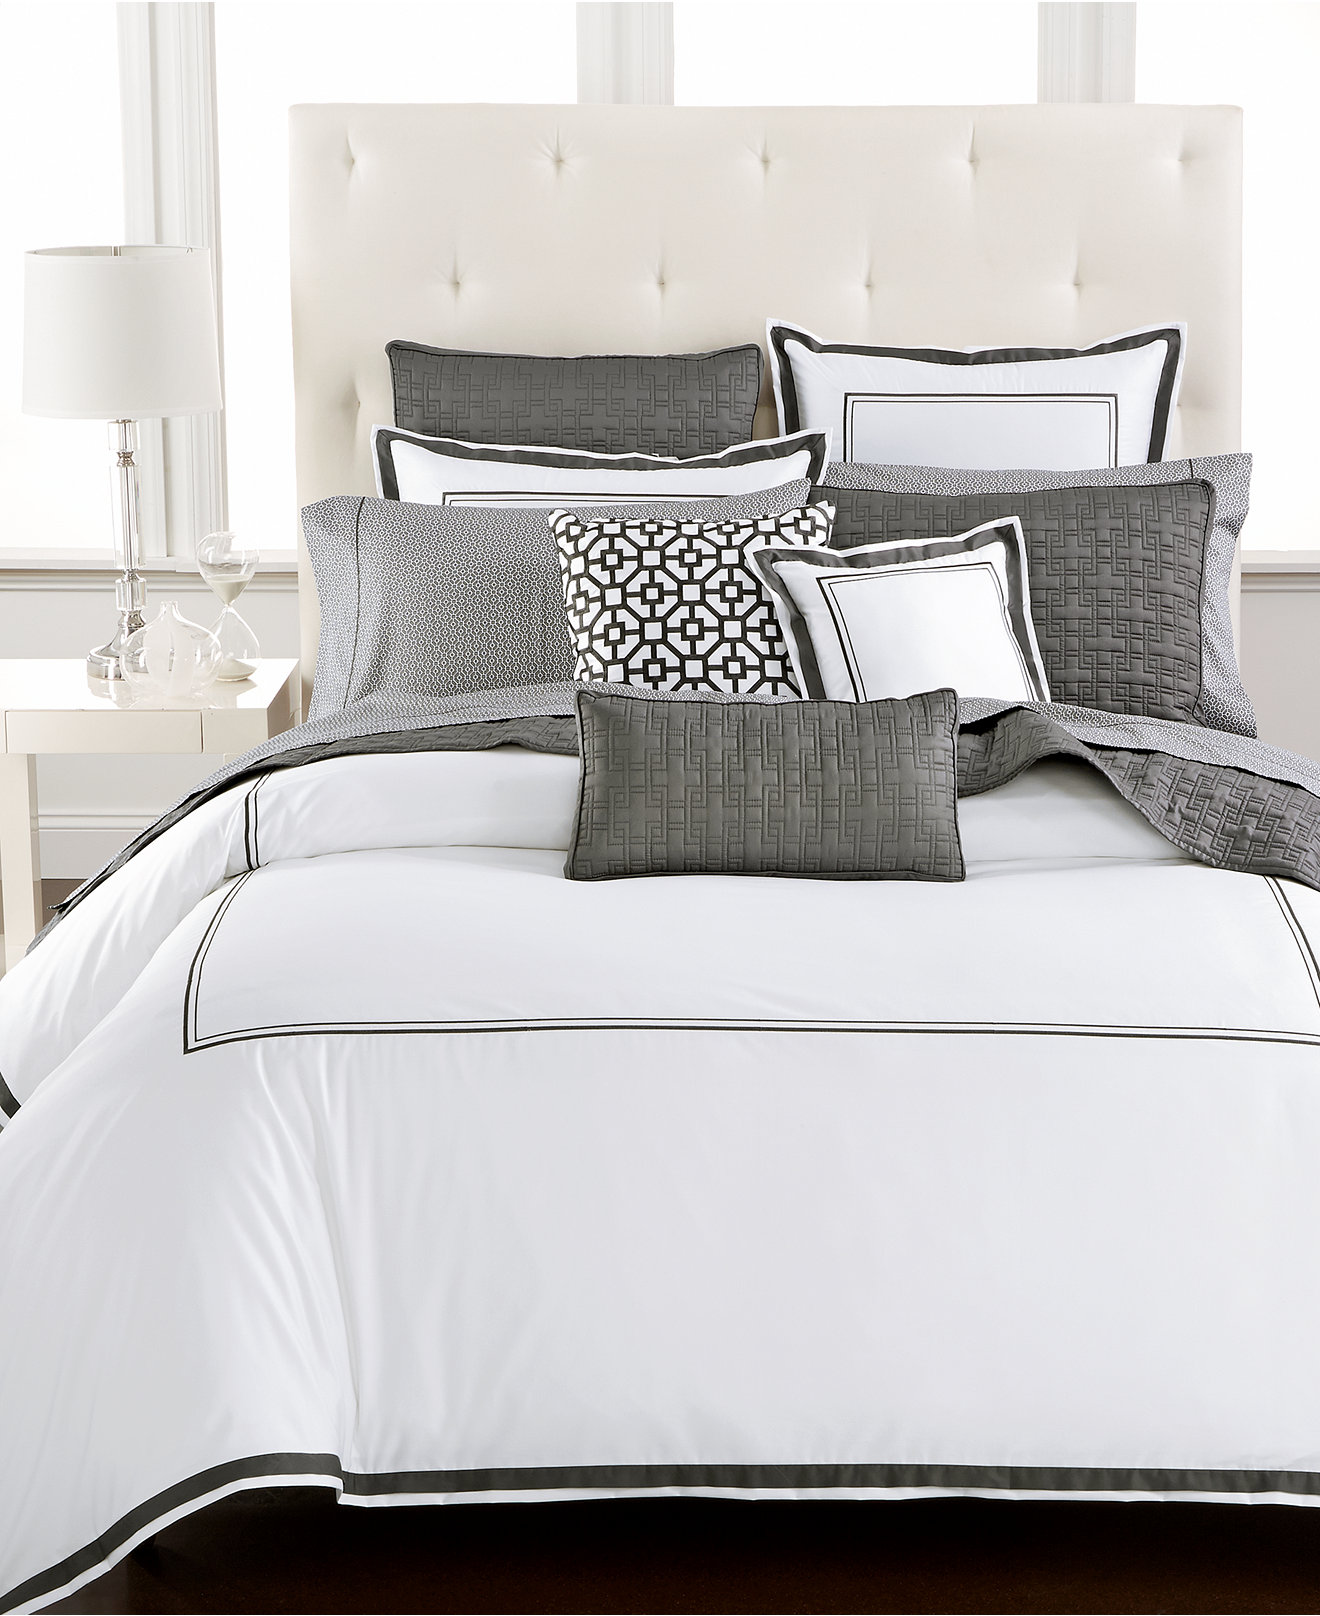 Ribbon embroidery bedspread designs - Hotel Collection Embroidered Frame Bedding Collection Only At Macy S